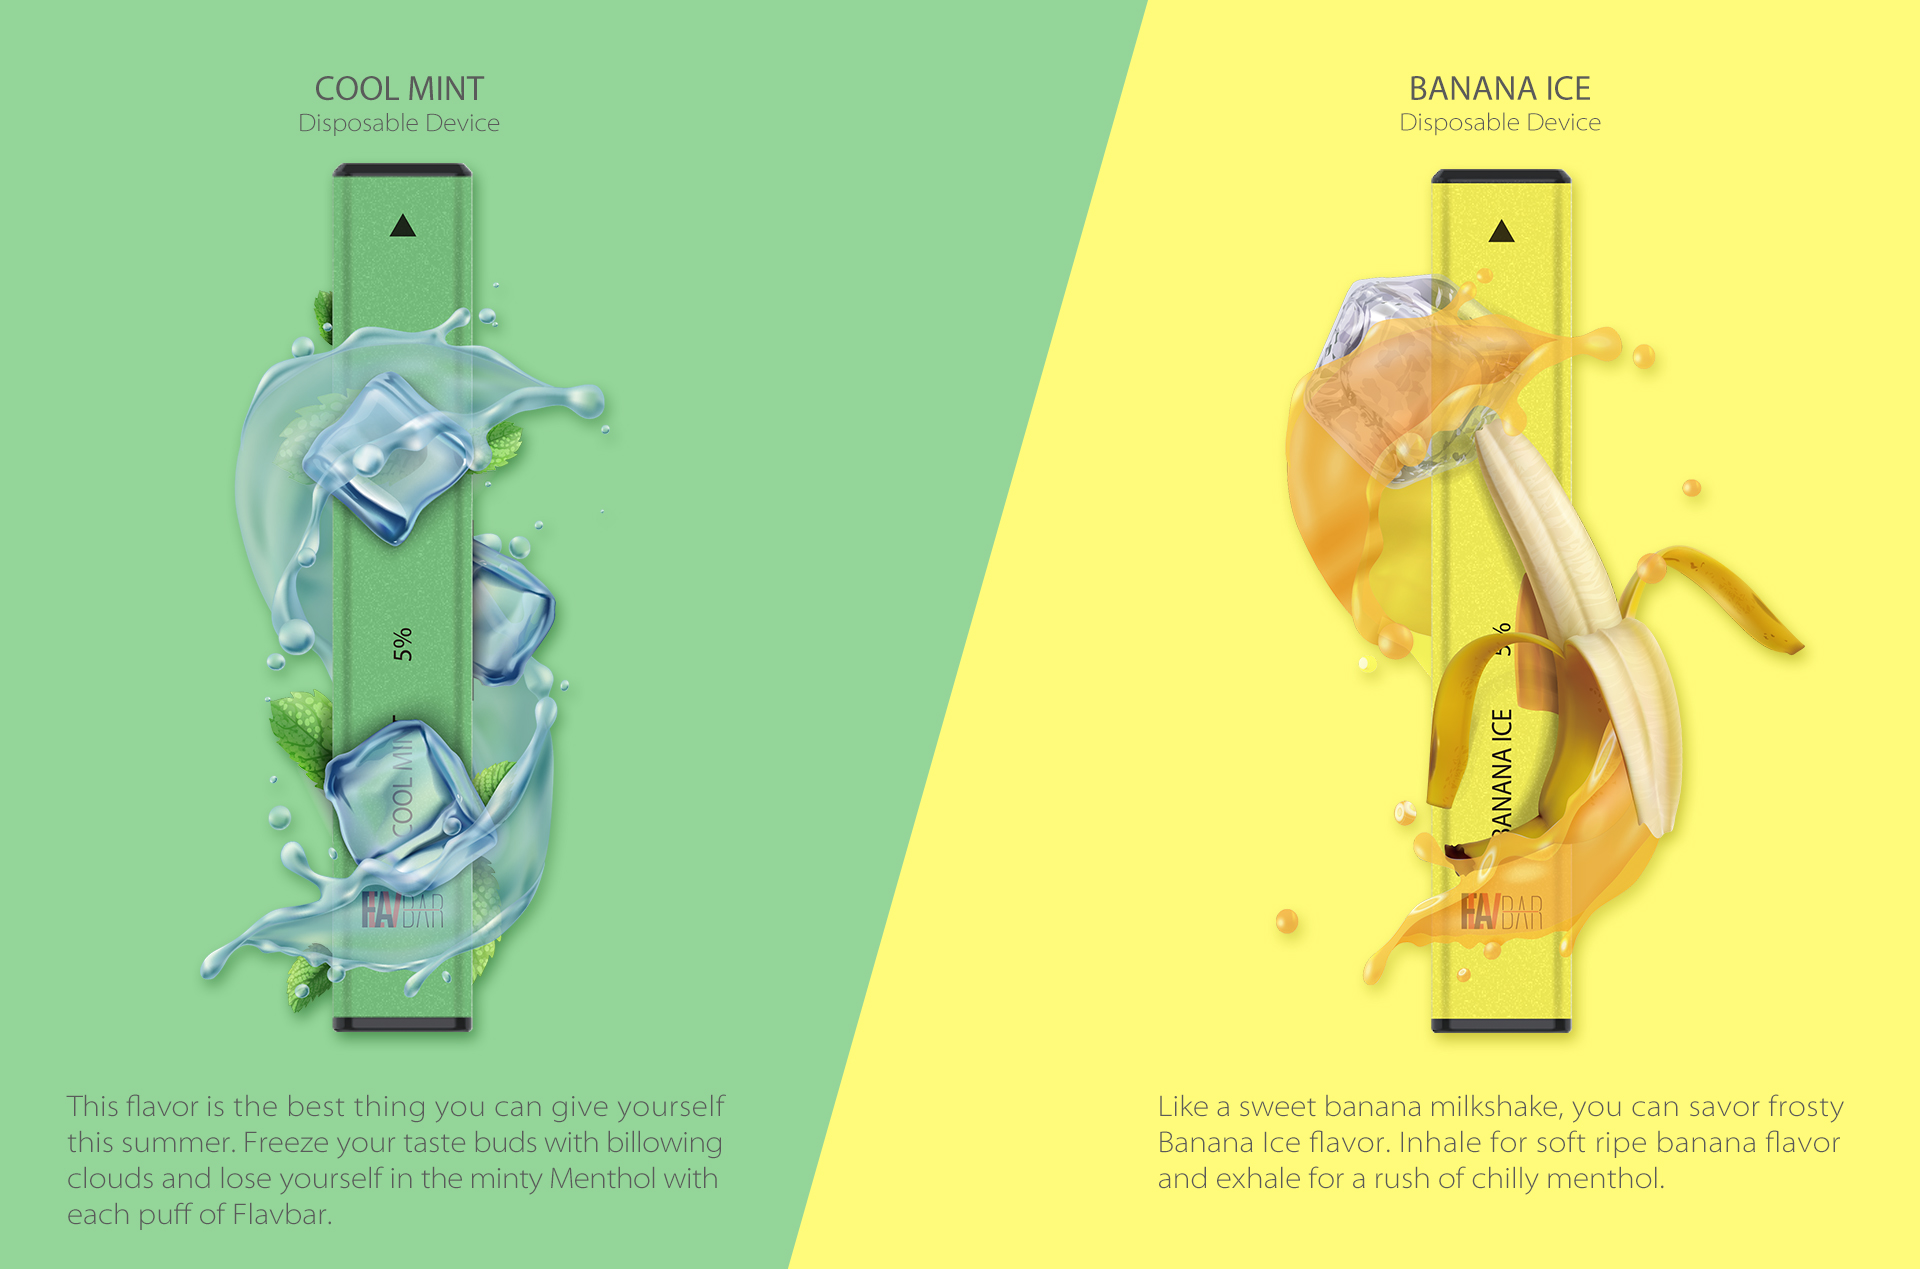 Flavbar v1 pod disposable device cool mint and banana ice flavor.